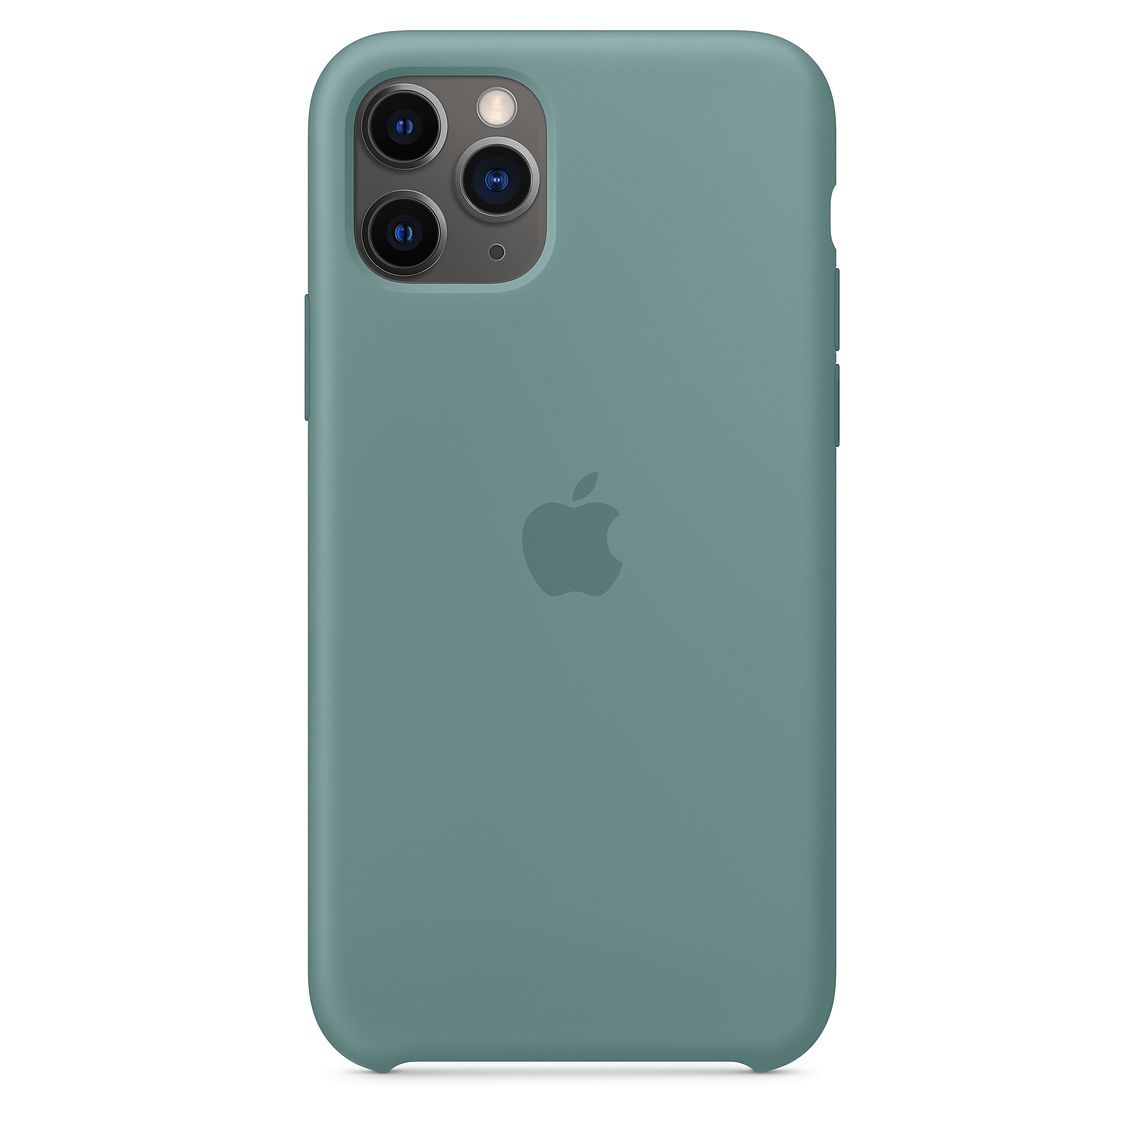 Iphone 11 Pro Max Cover Iphone Leather Case Iphone Iphone Accessories